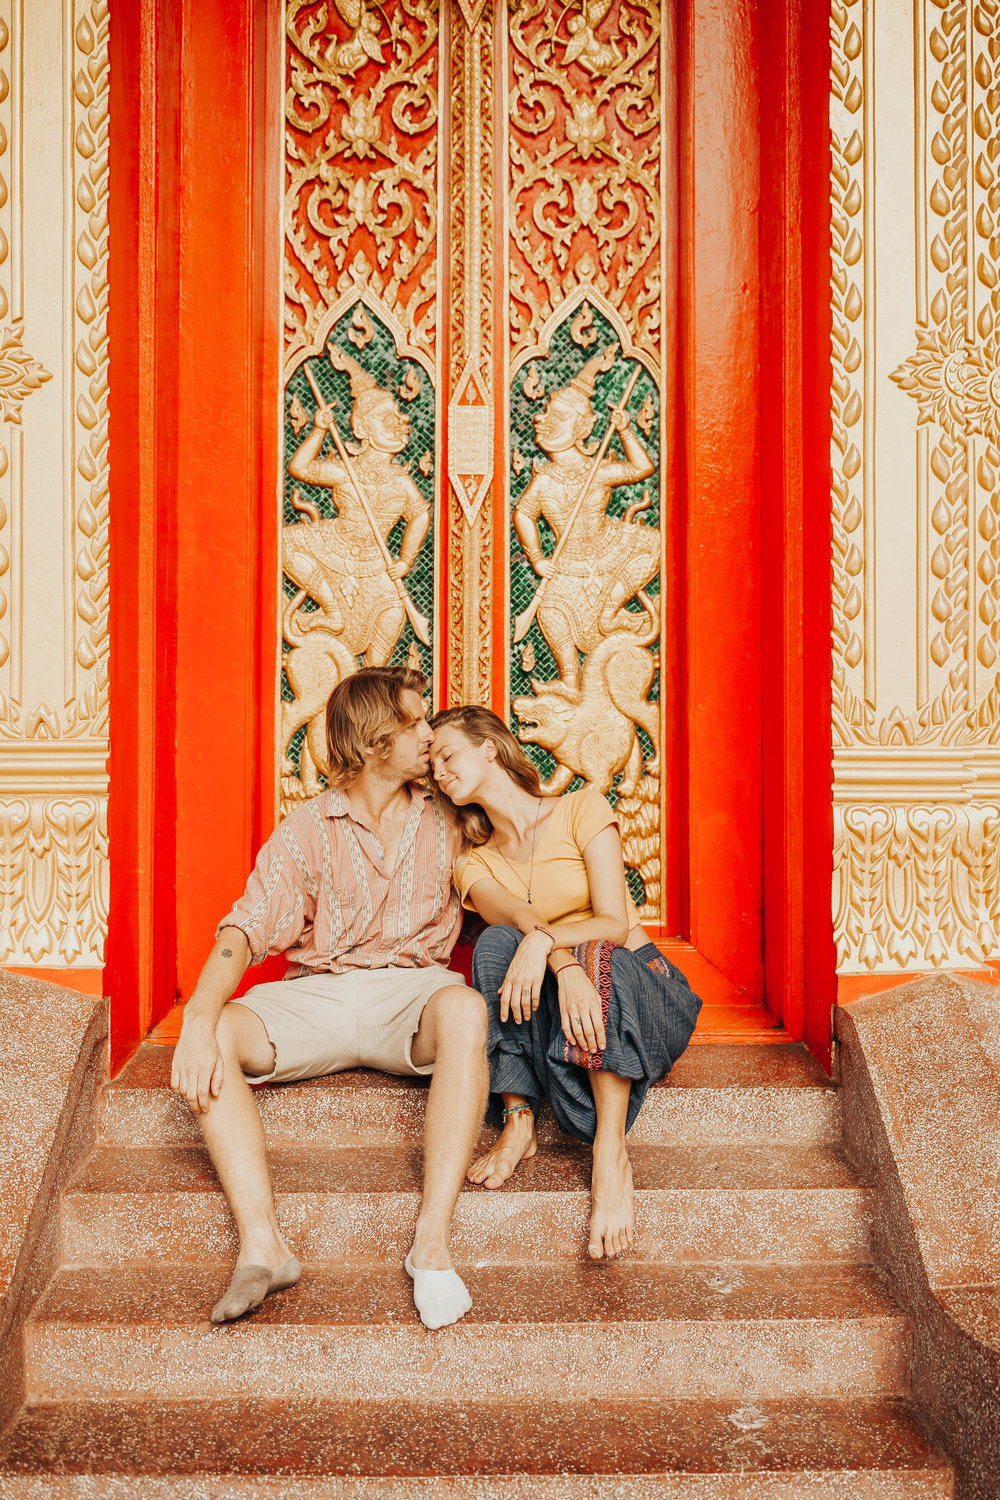 Julie and Will Old Town Phuket Couples Session 45.jpg